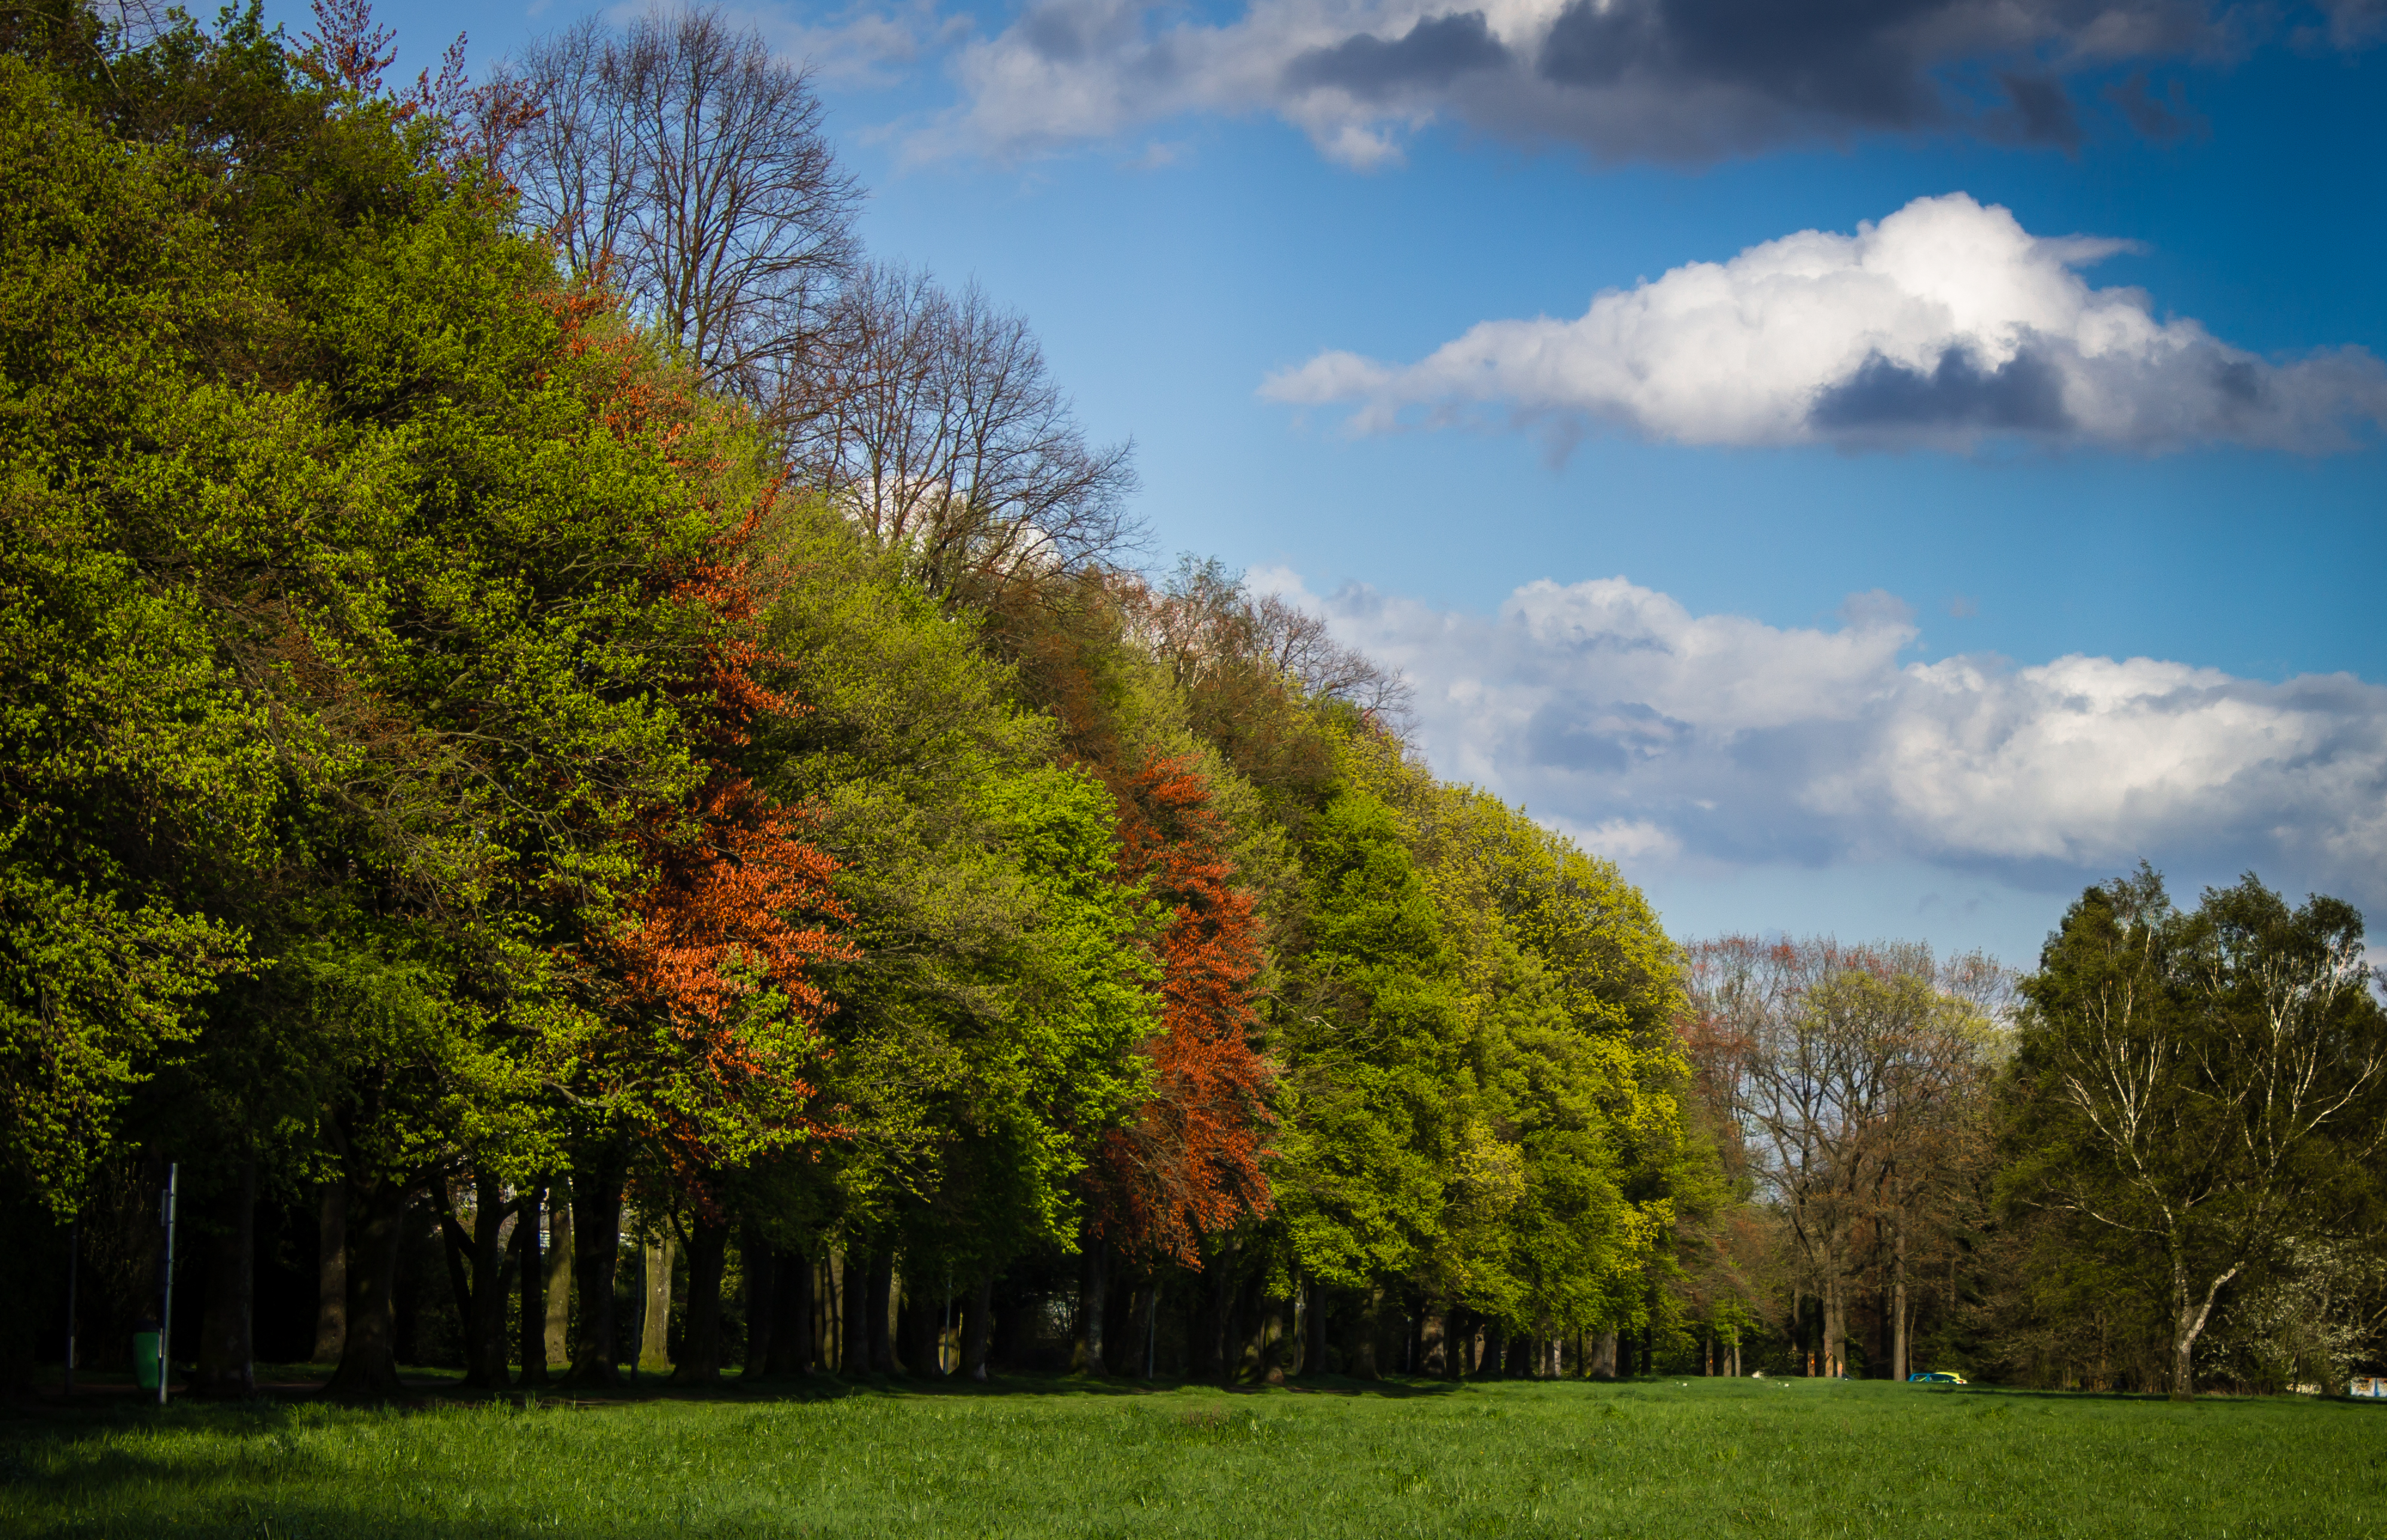 Fall Cartoon Wallpaper Green And Red Tress Under Blue Sky And White Clouds During